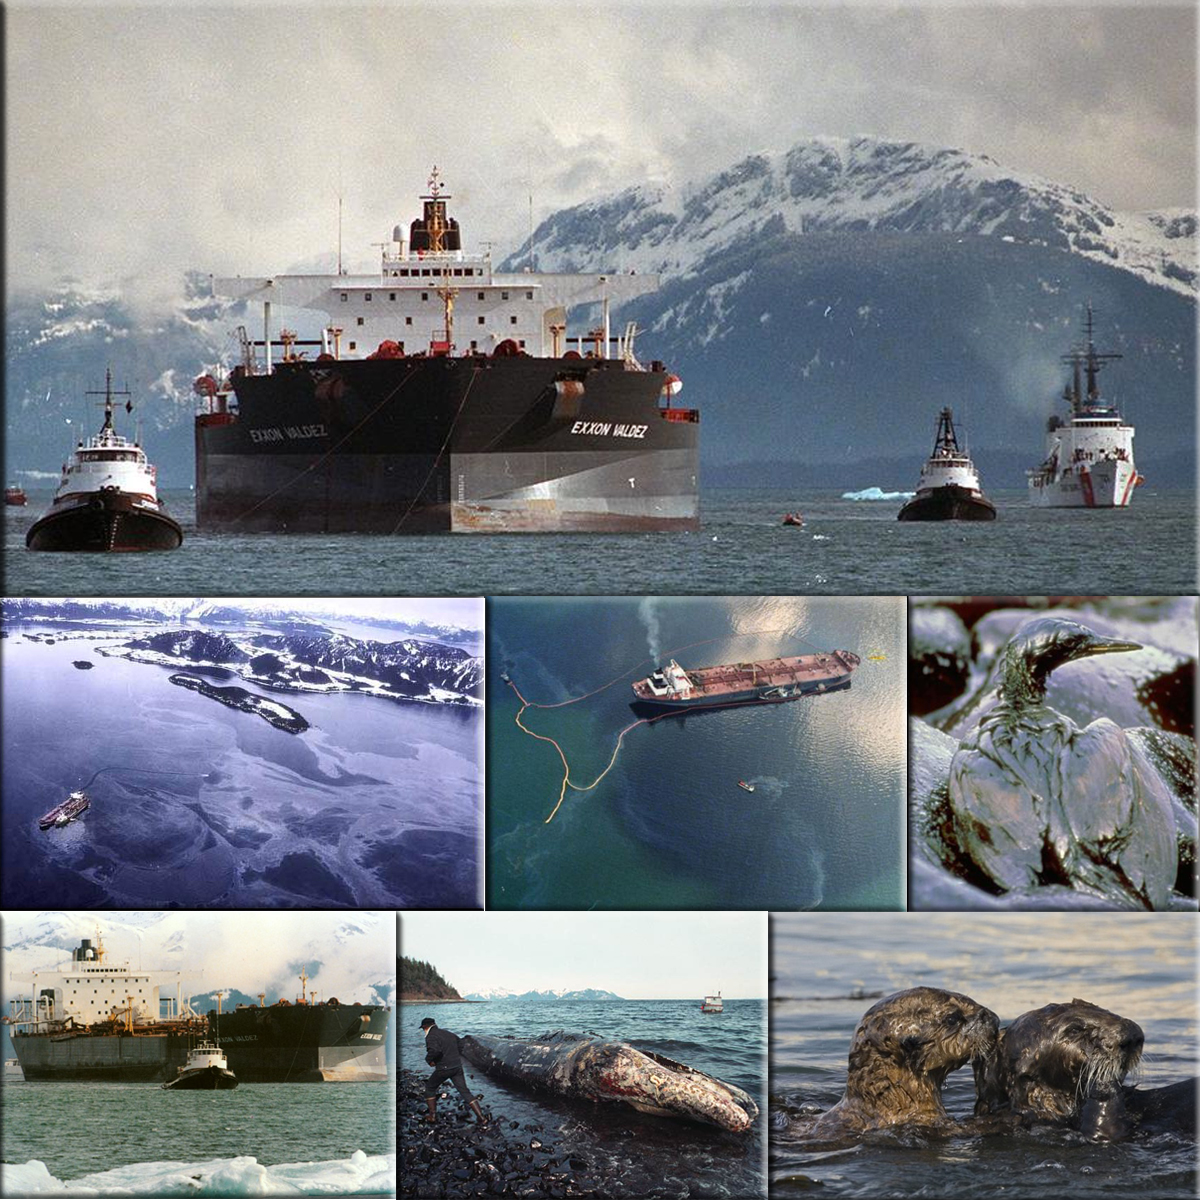 a history of exxon valdez oil spill in 1989 The biggest oil spill in us history sparked improvements in tanker  on march  24, 1989, the supertanker exxon valdez ran aground on bligh.